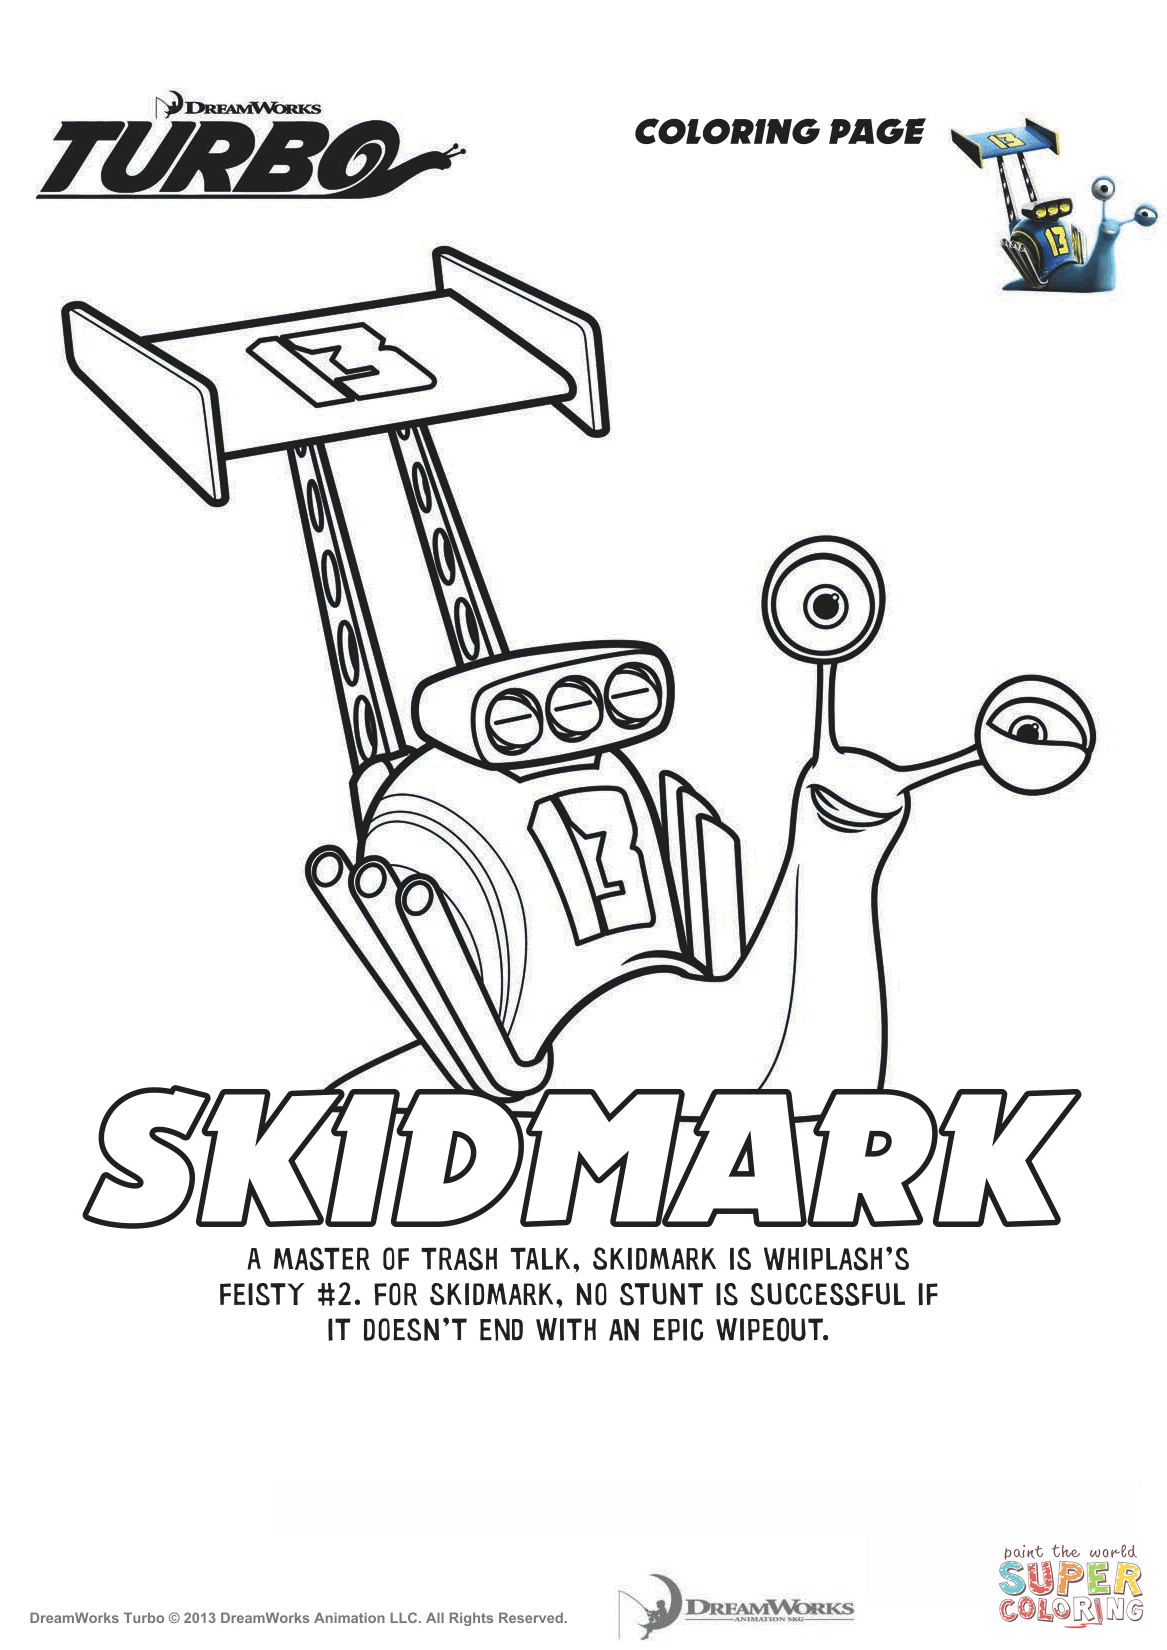 Skidmark From Turbo Coloring Page